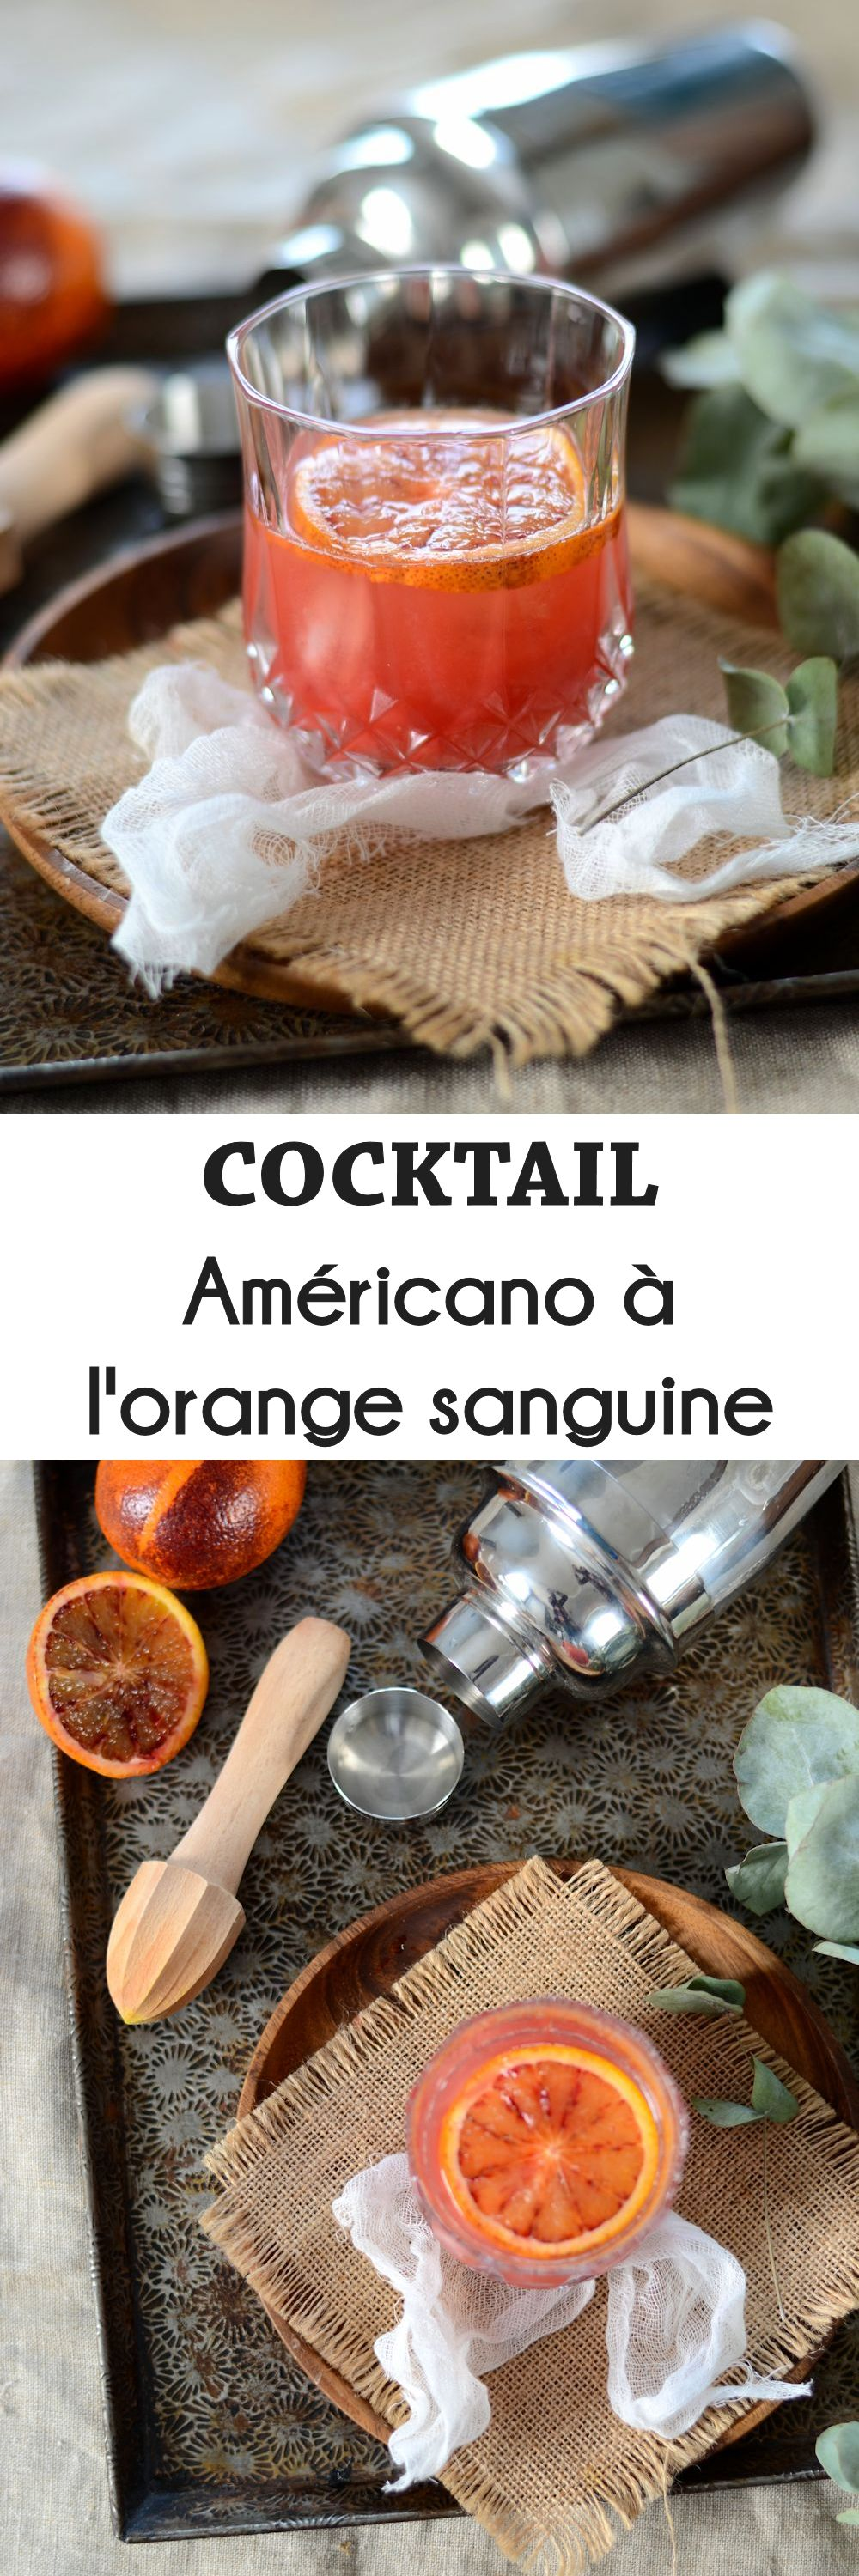 Cocktail Americano à l'orange sanguine